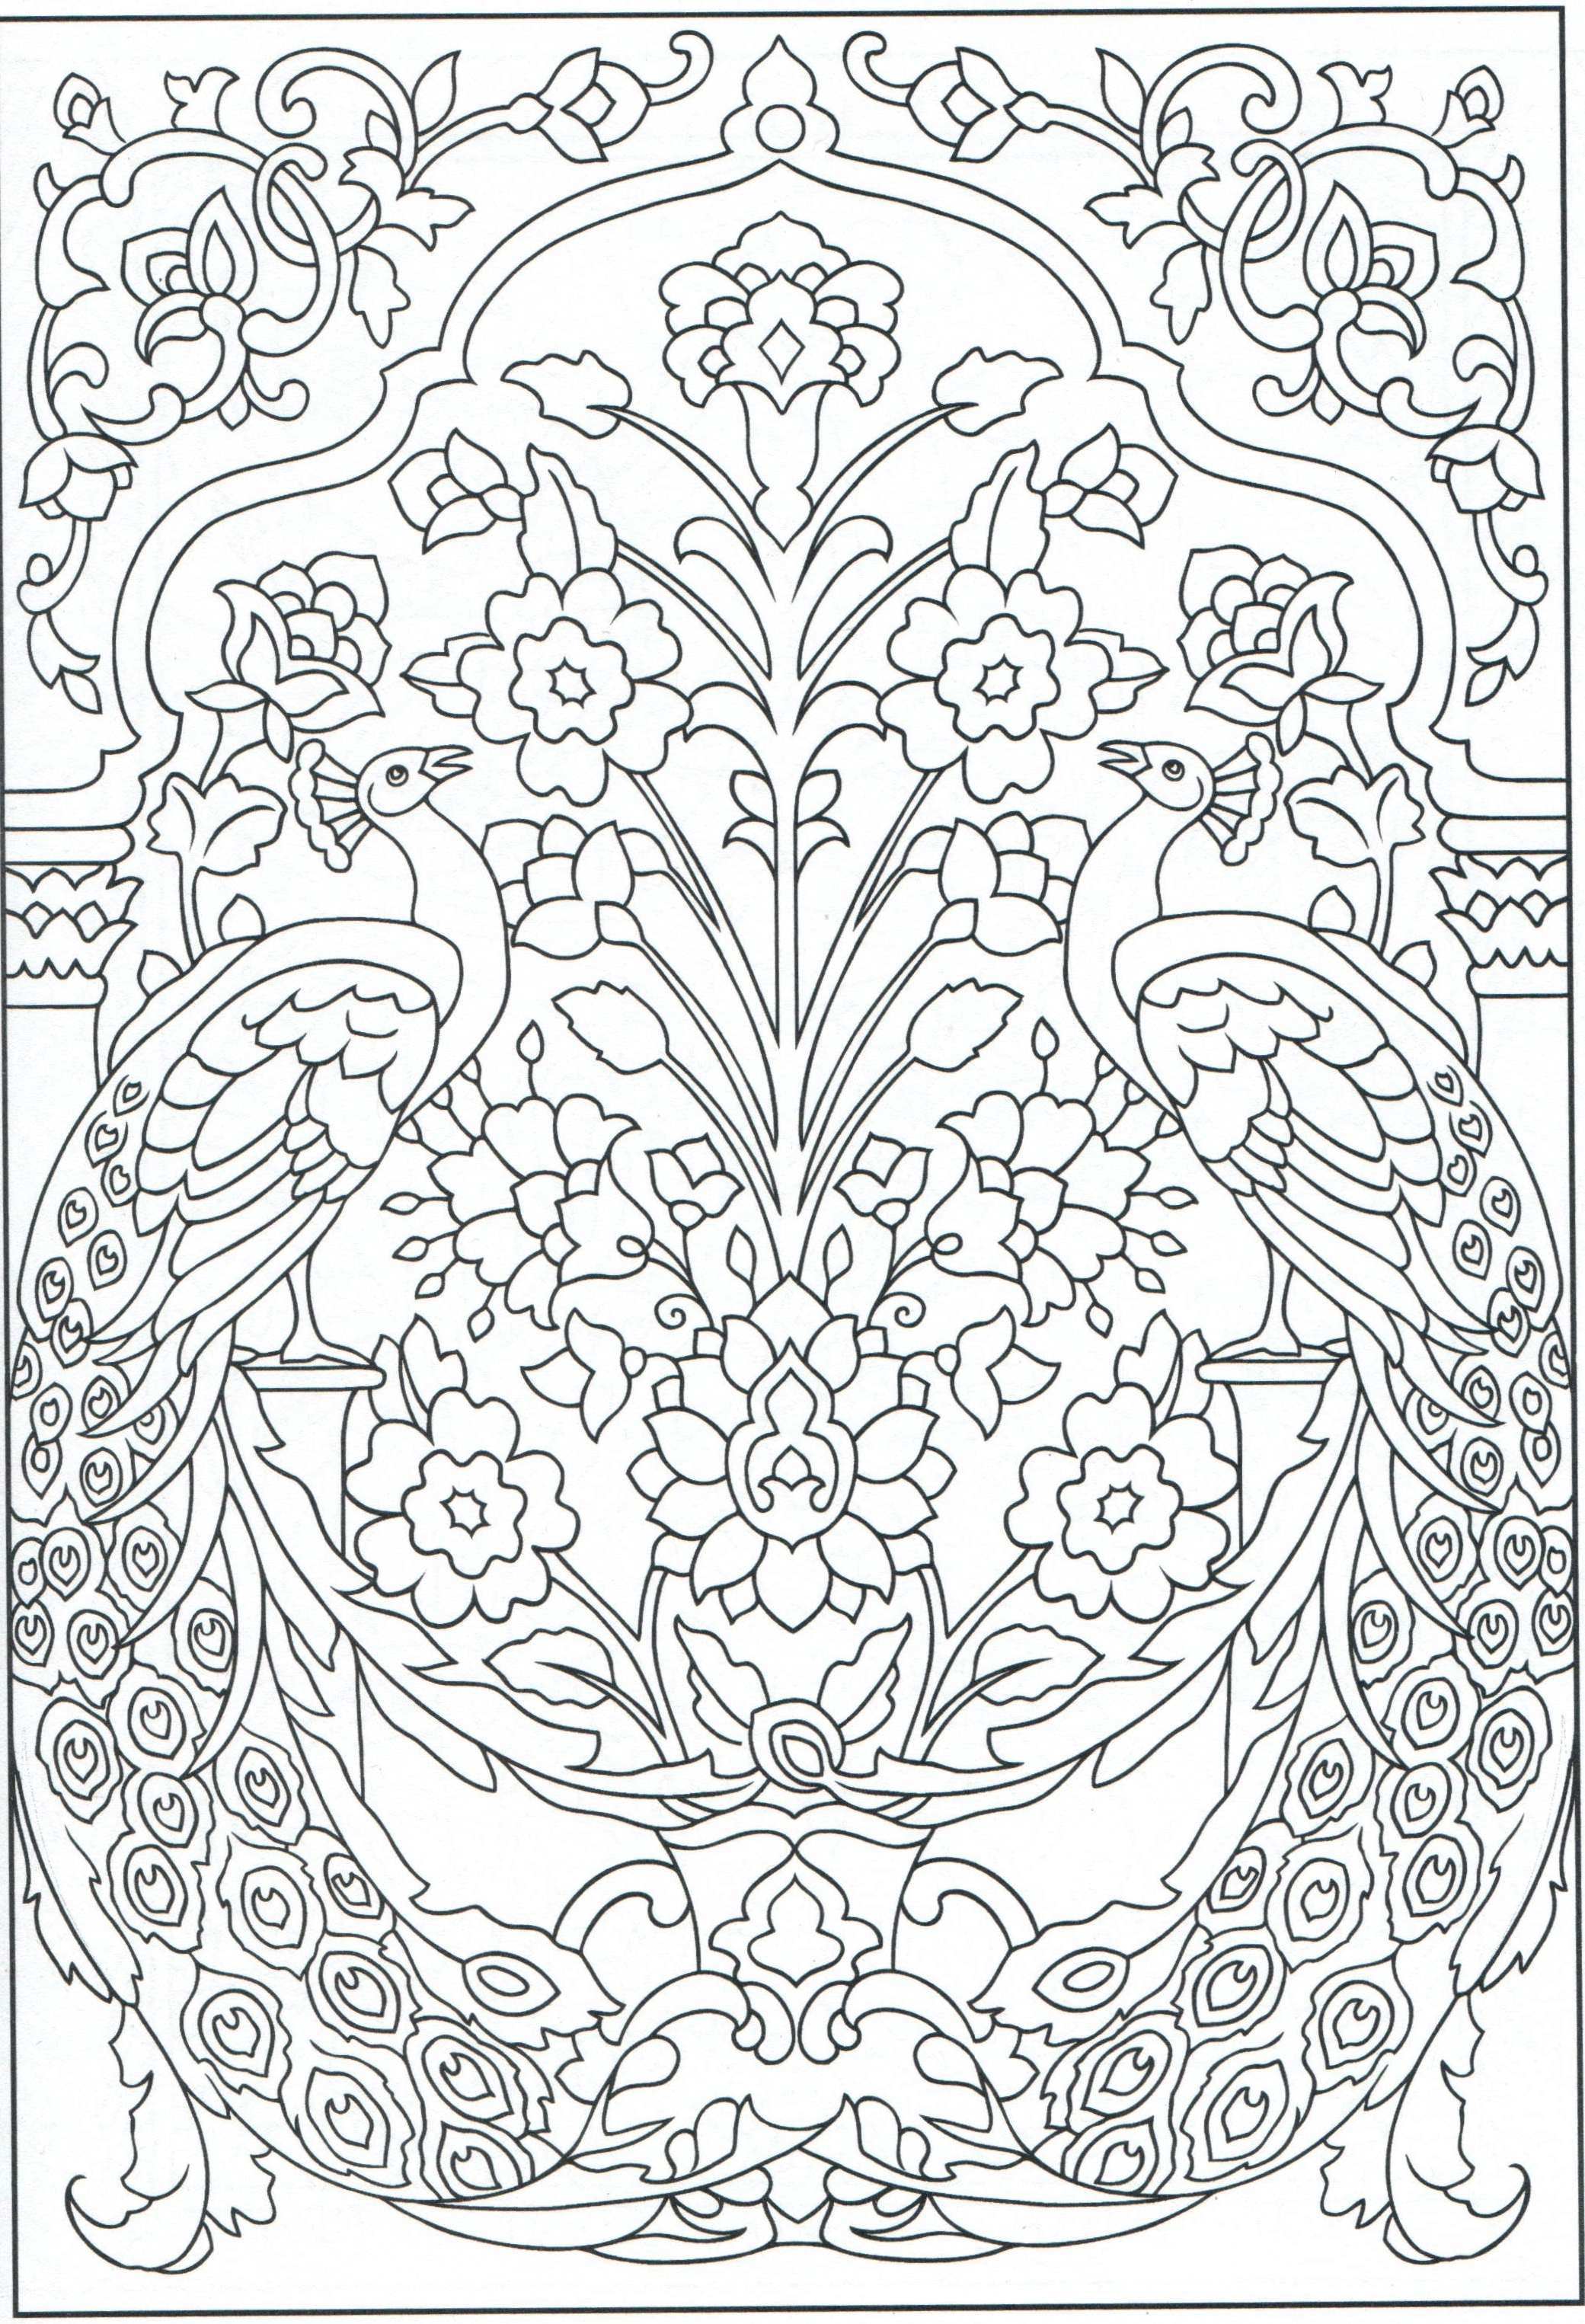 Color Me Happy Coloring Pages At Getdrawings Free Download